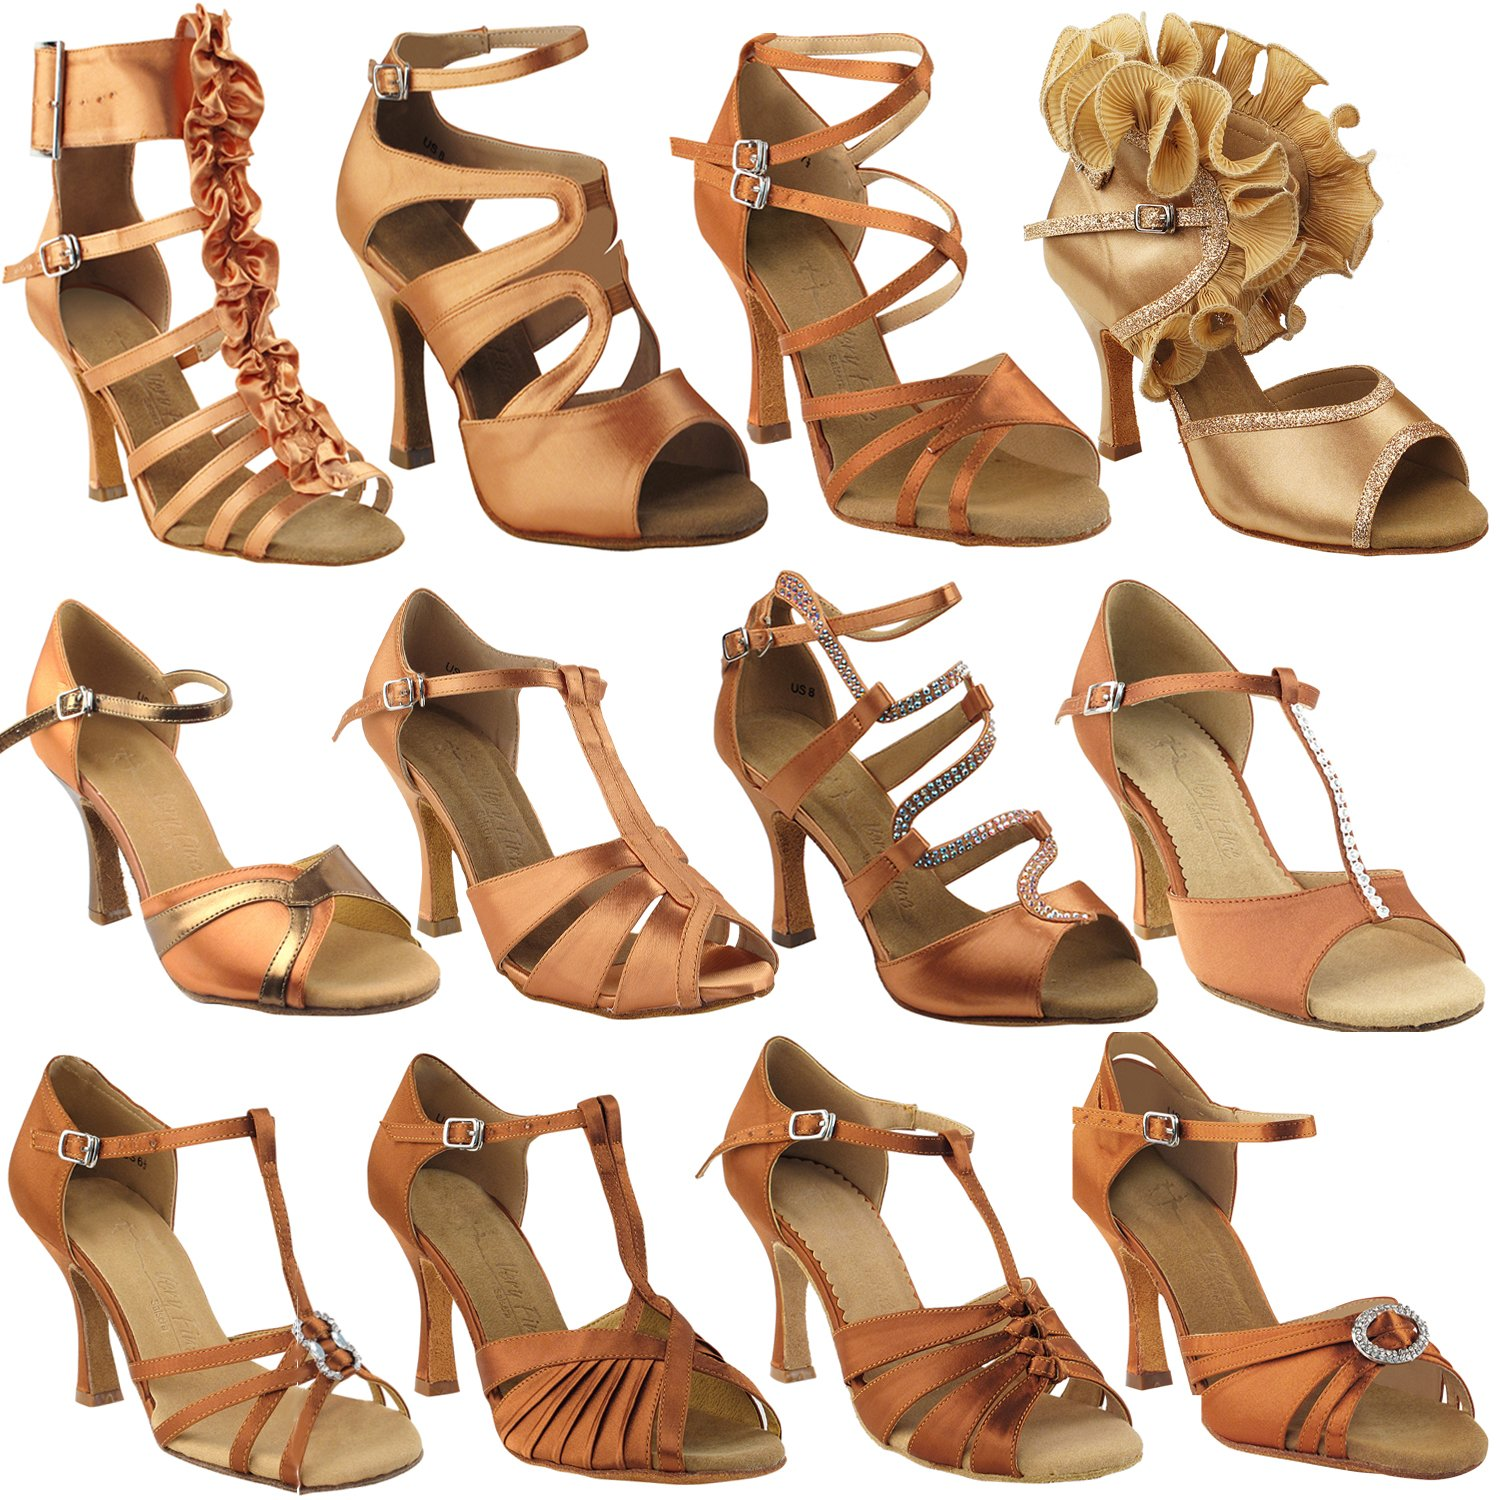 50 Shades of TAN Dance Shoes for Women 1 Latin Ballroom Salsa Clubing Wedding